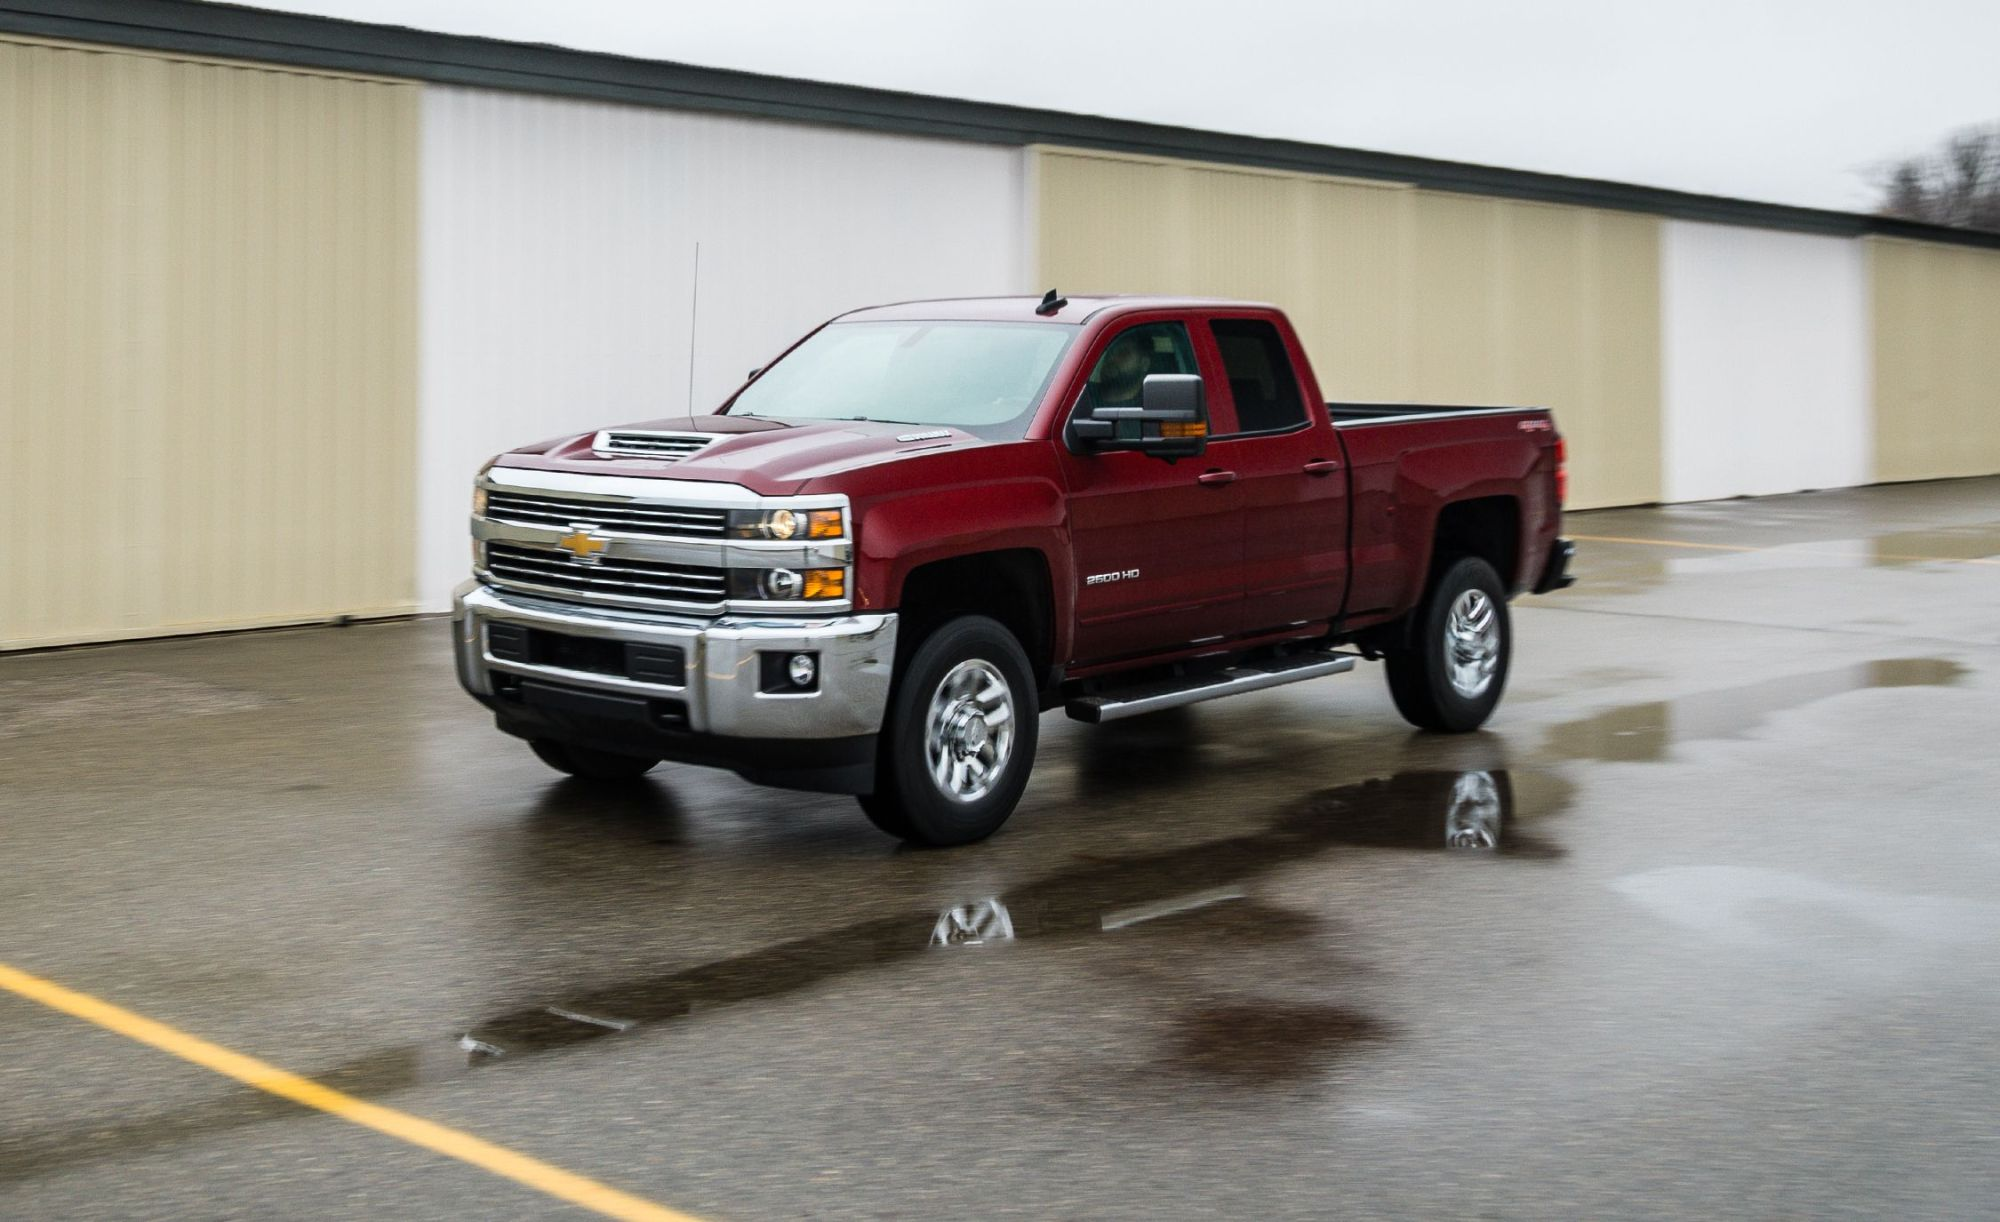 hight resolution of 2018 chevrolet silverado 2500hd 3500hd in depth model review rh caranddriver com v8 engine diagram gm engine parts diagram